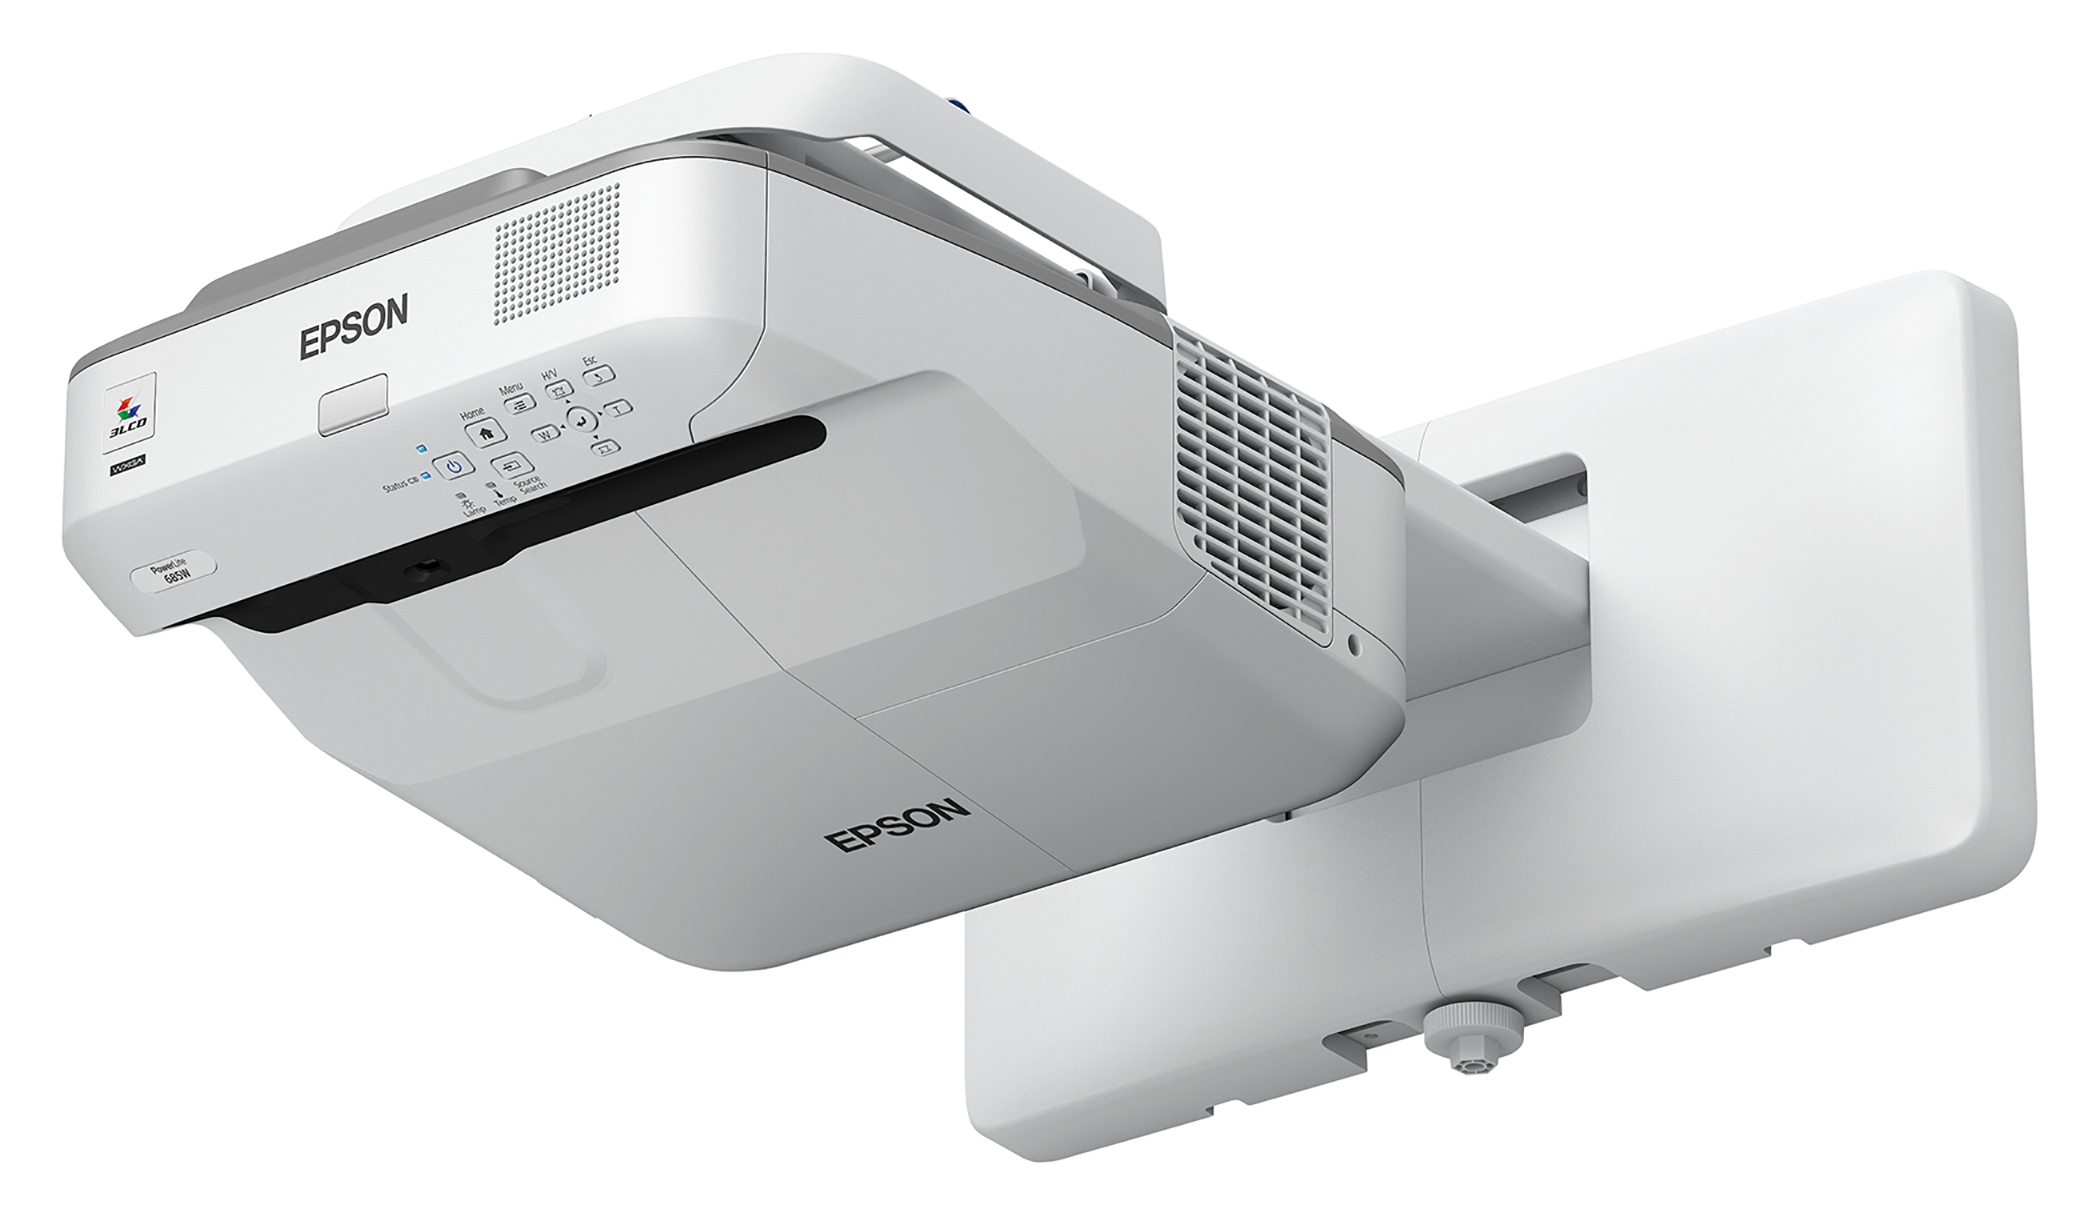 Epson PowerLite 685W 3500lm WXGA Ultra Short-Throw Projector for SMART Board, Open Box